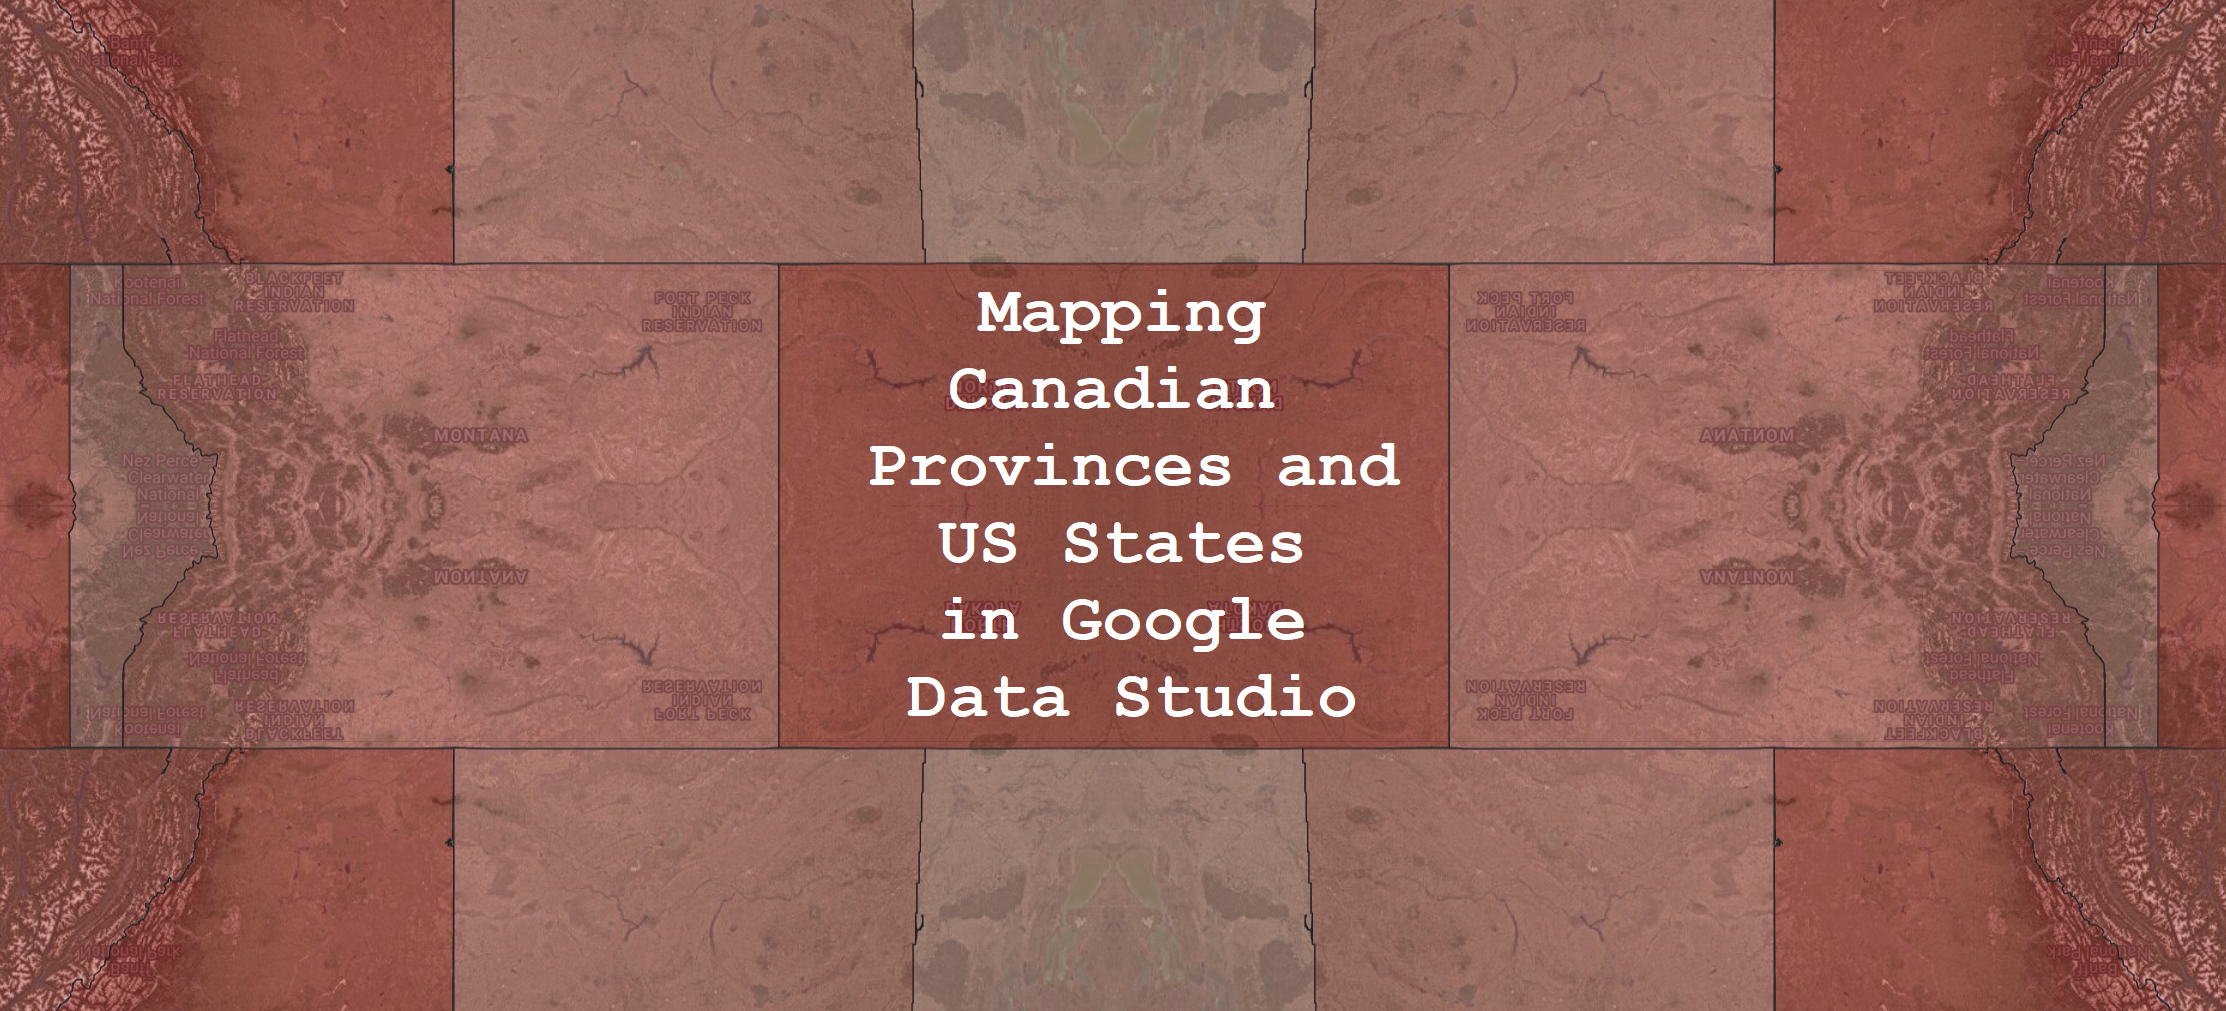 Mapping Canadian Provinces and US States in Google Data Studio